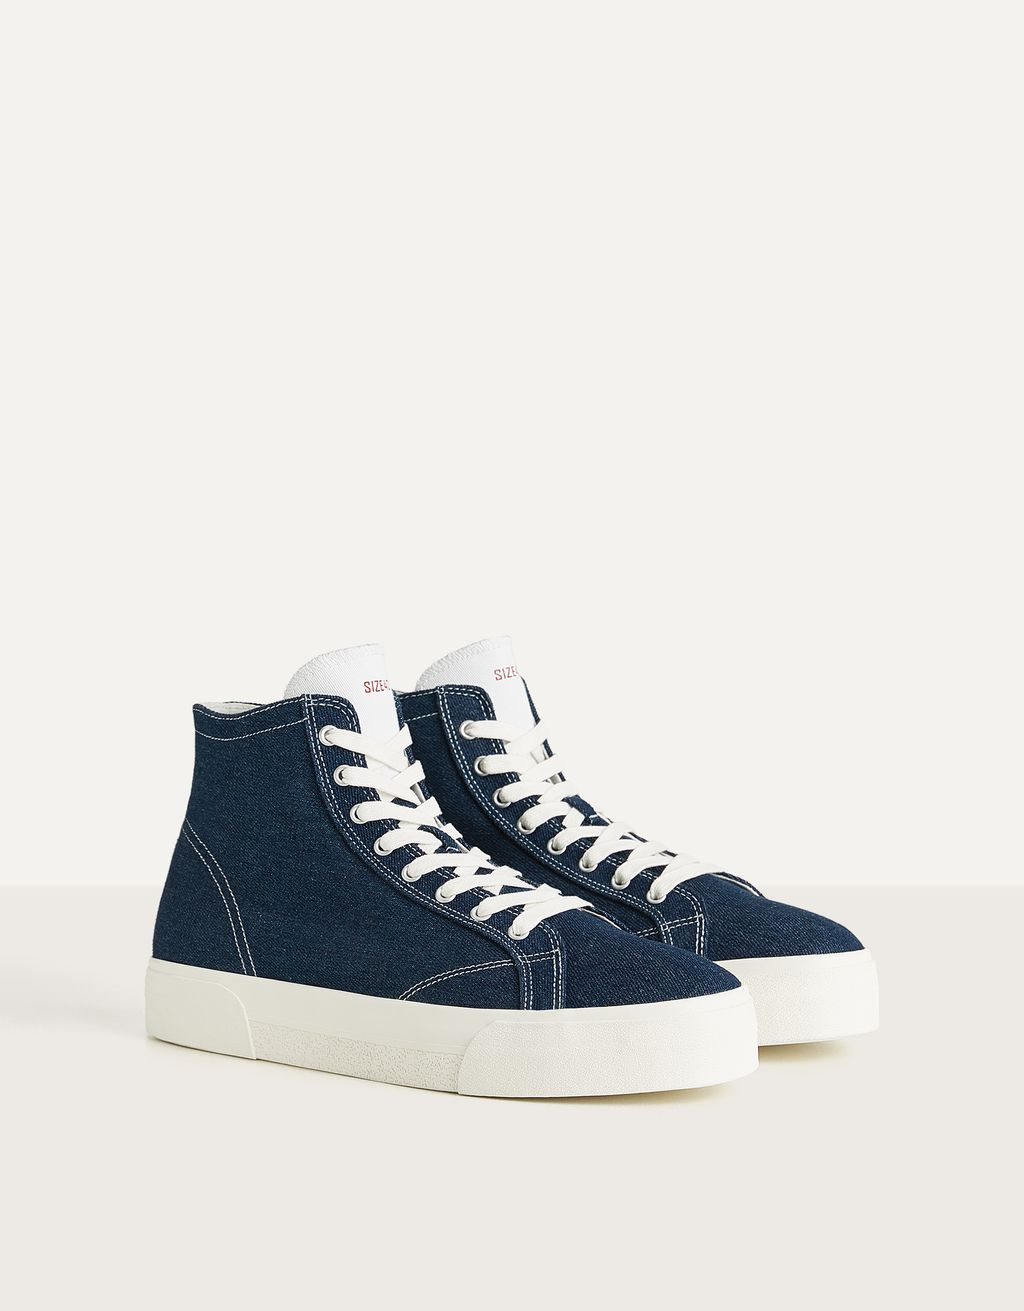 Baskets montantes en denim homme